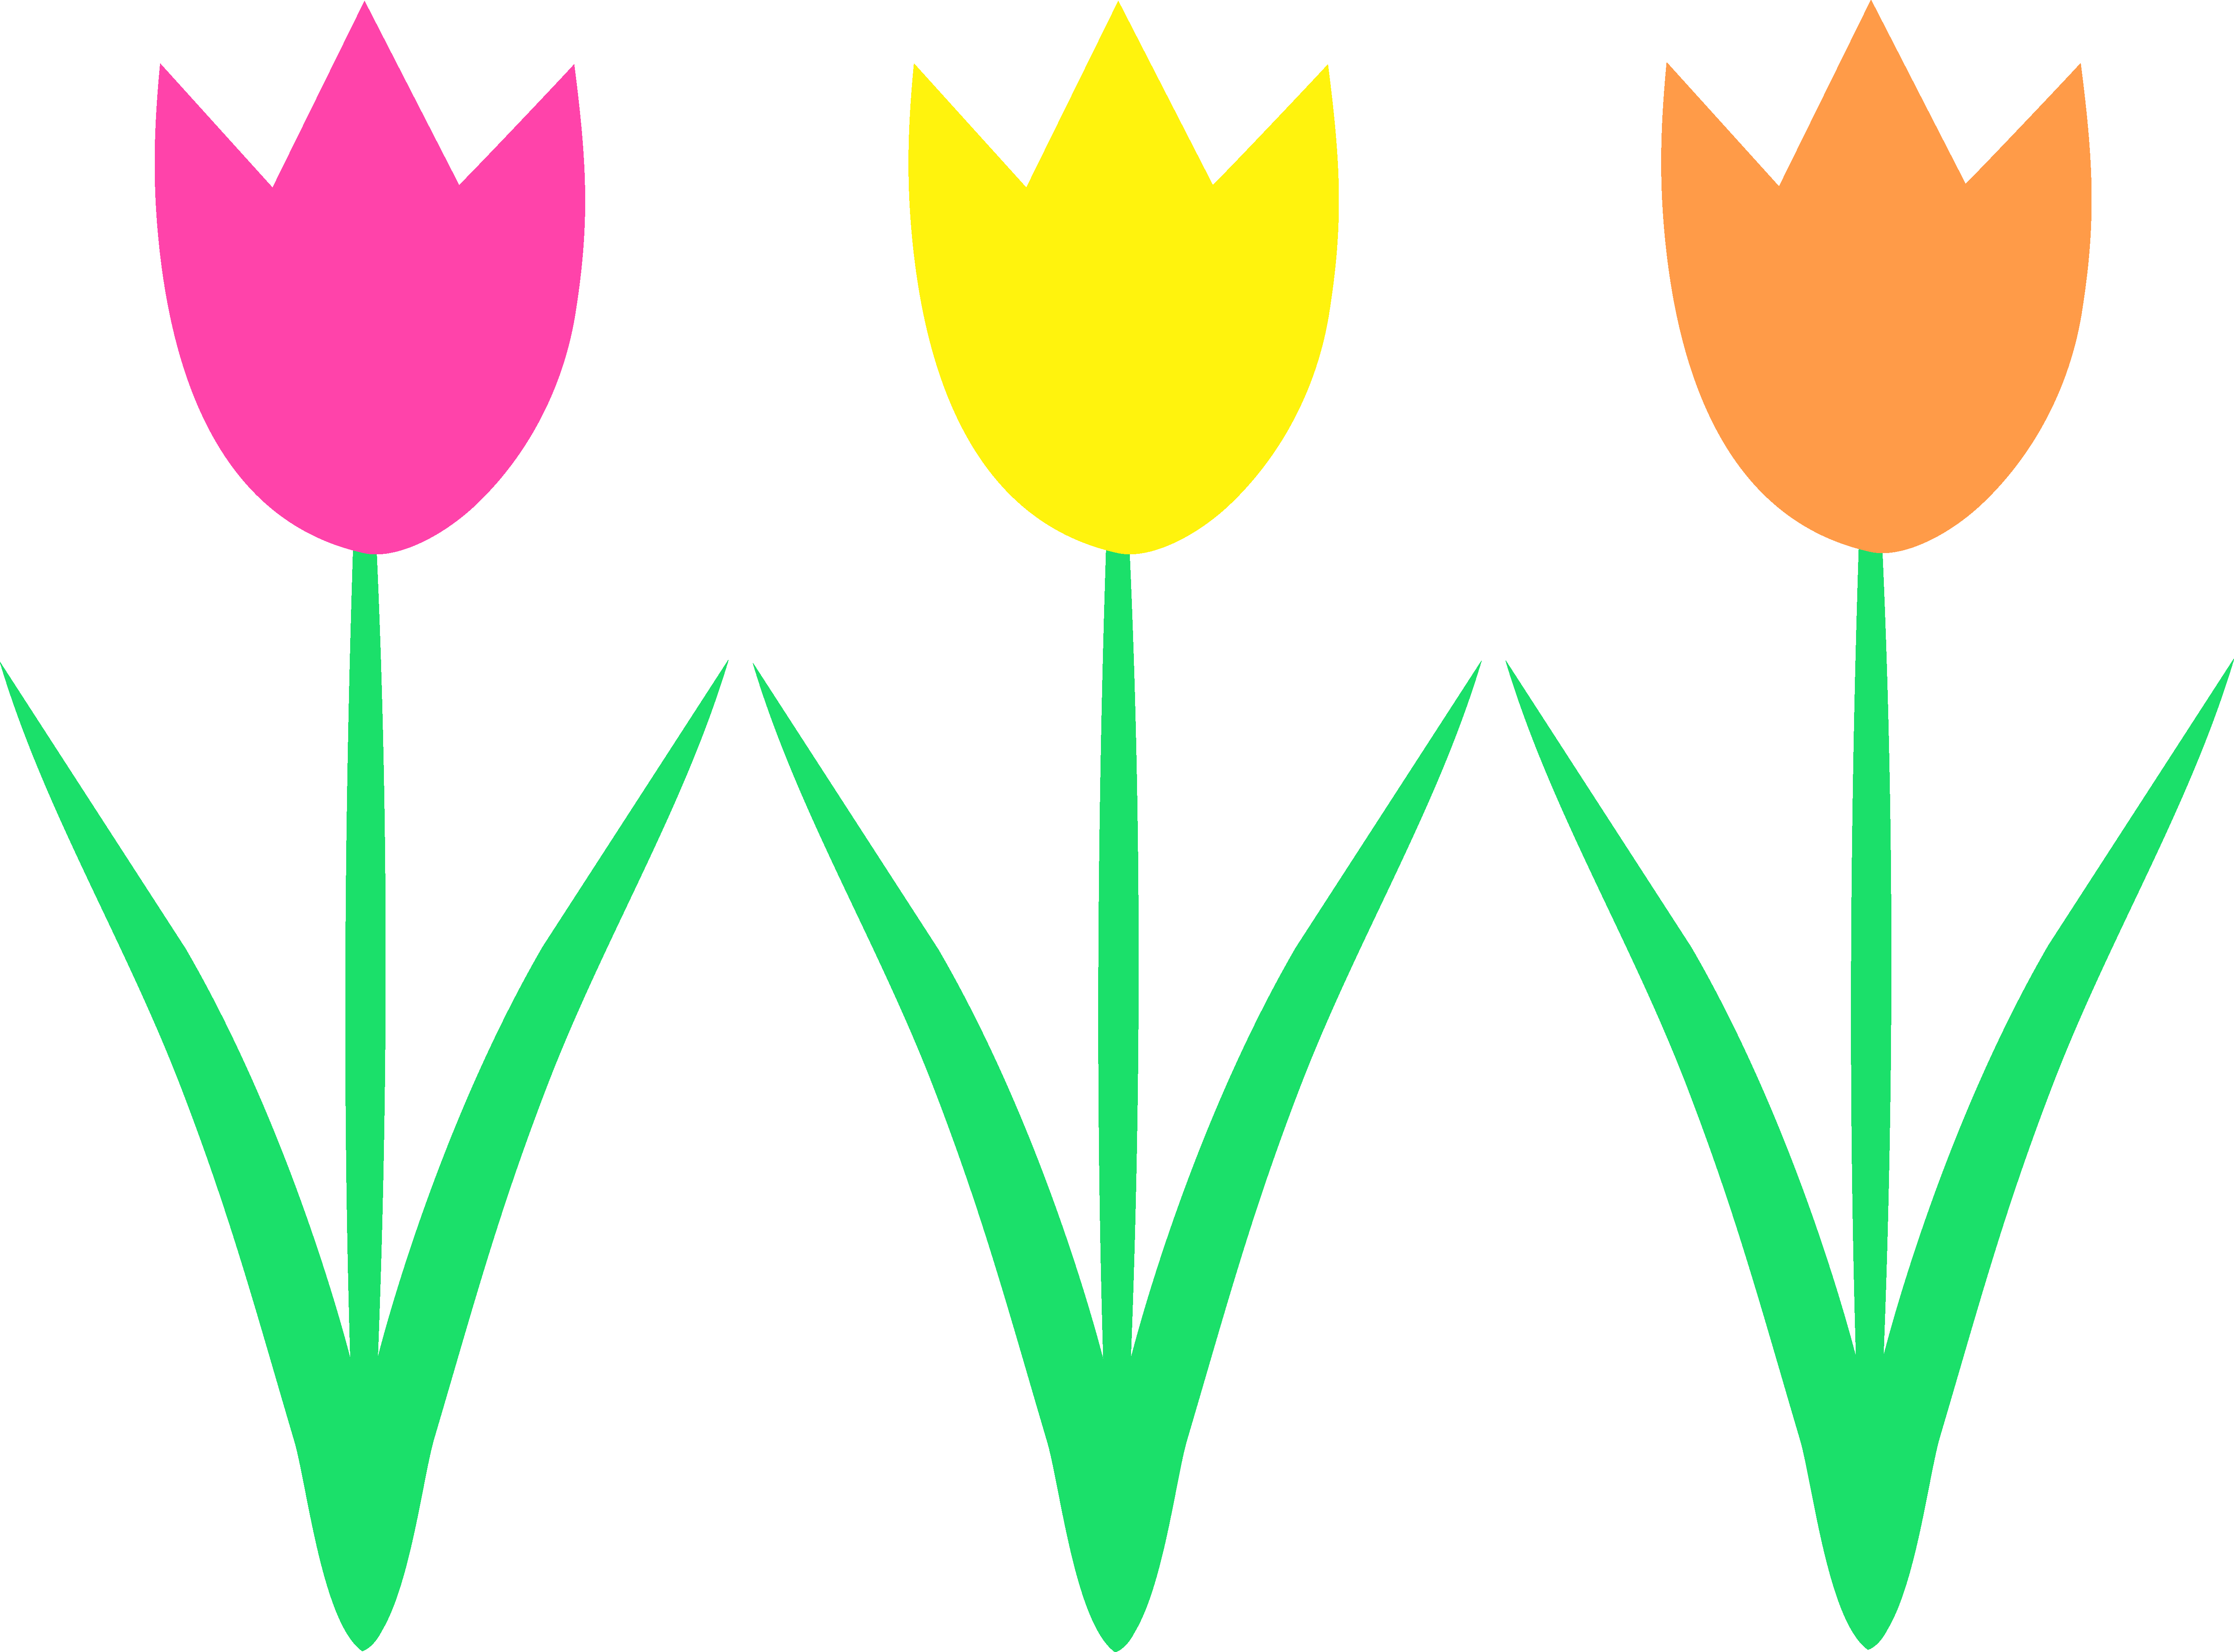 5627x4161 Cute Spring Tulips Design